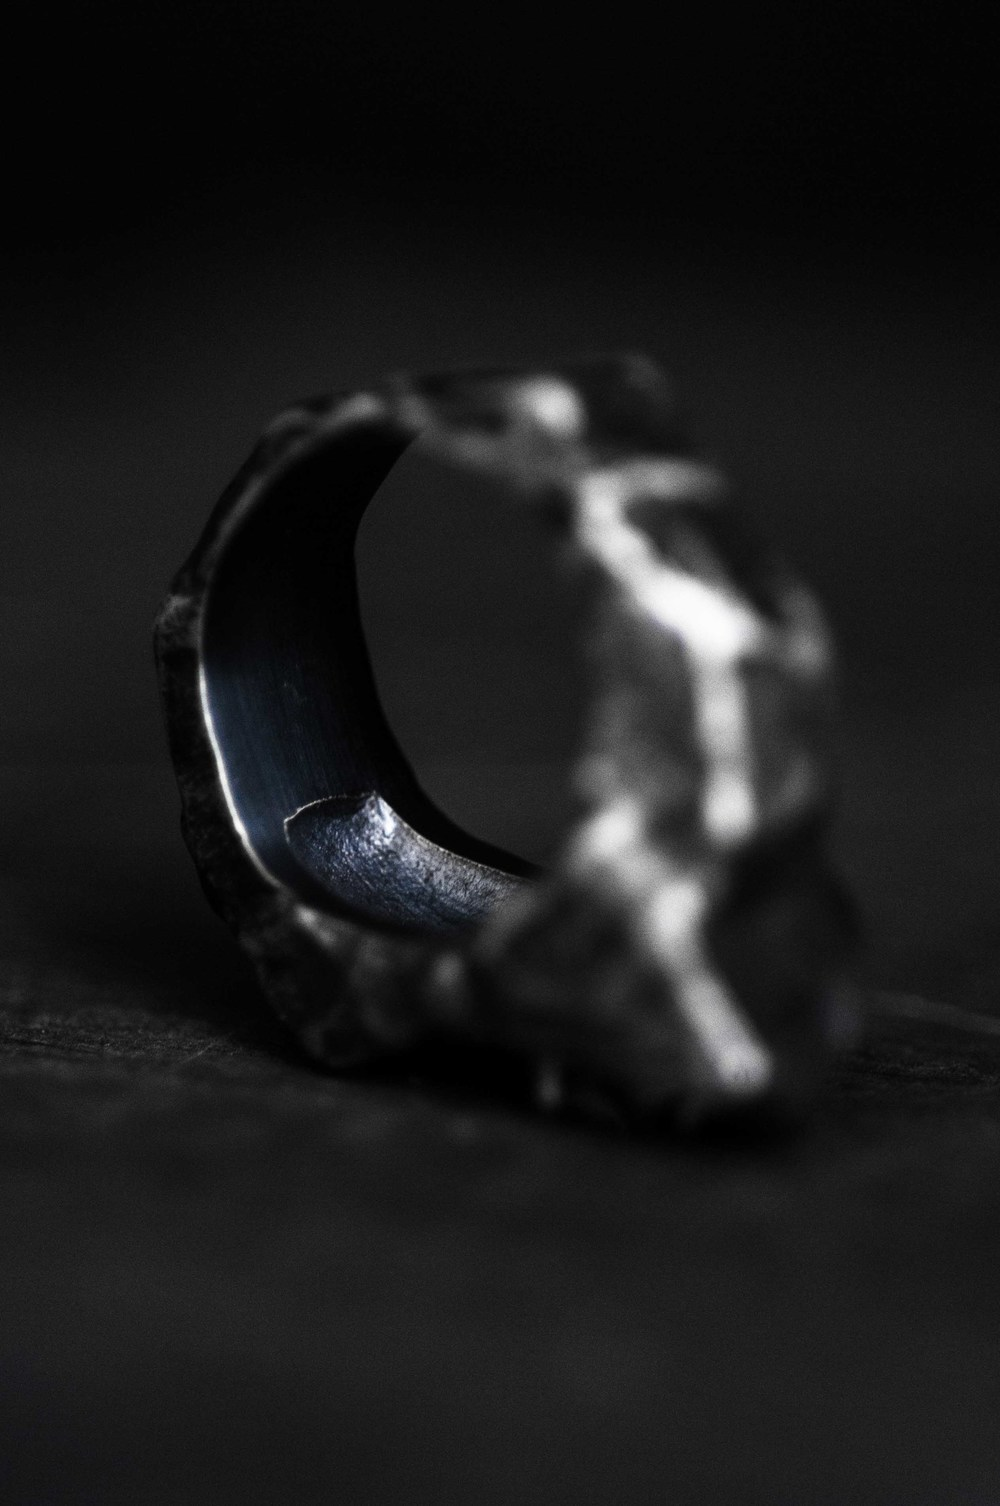 gris ring/pendant by alicia hannah naomi in collaboration with SOME/THINGS exclusively available at S/T CONCEPT S/TORE - photography by dario ruggiero | S/TUDIO